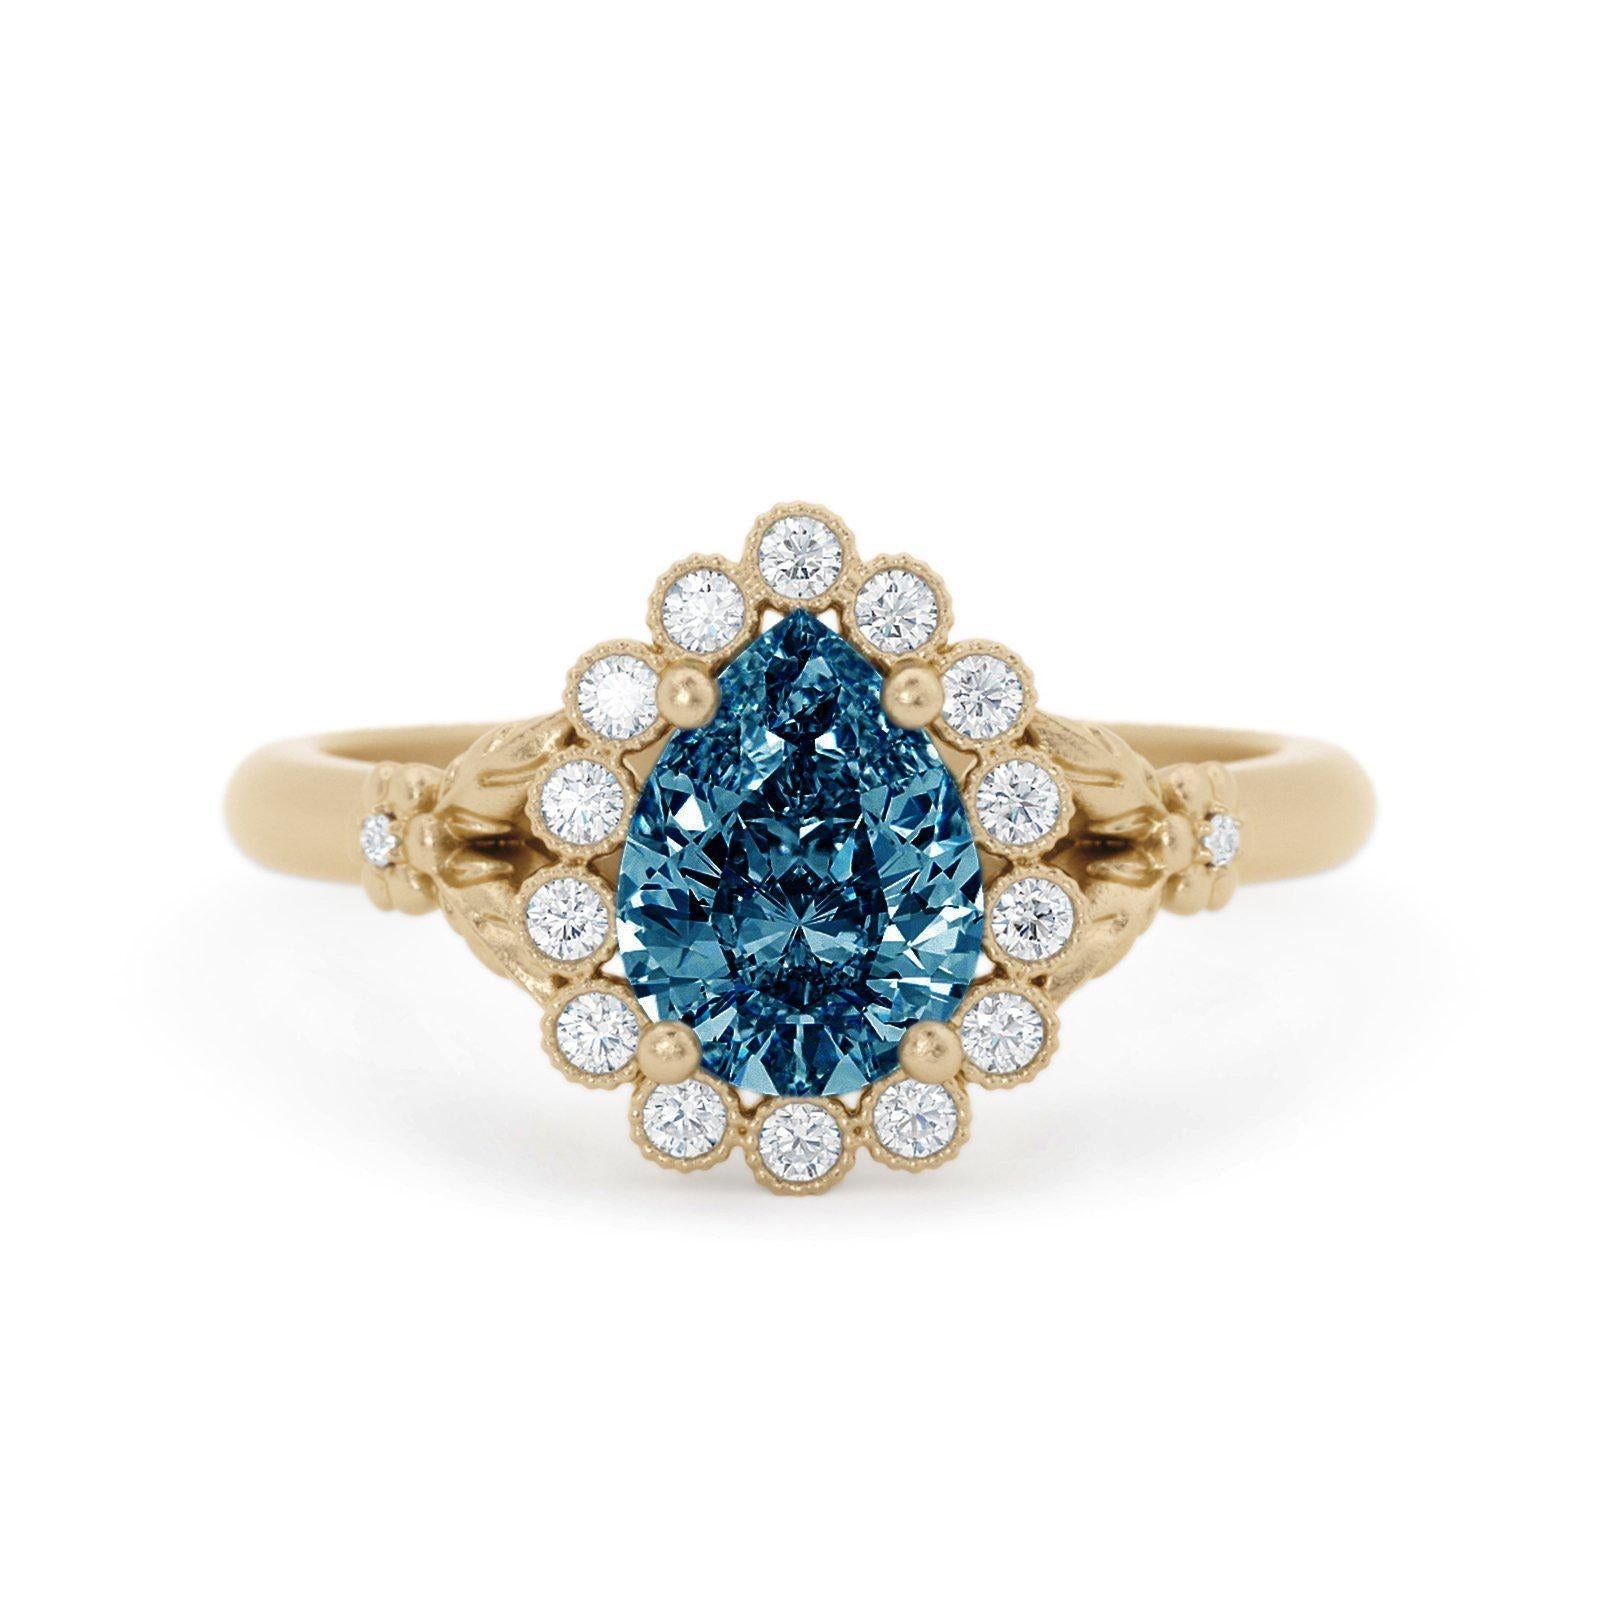 Penelope Pear Shaped Montana Sapphire Ring Halo